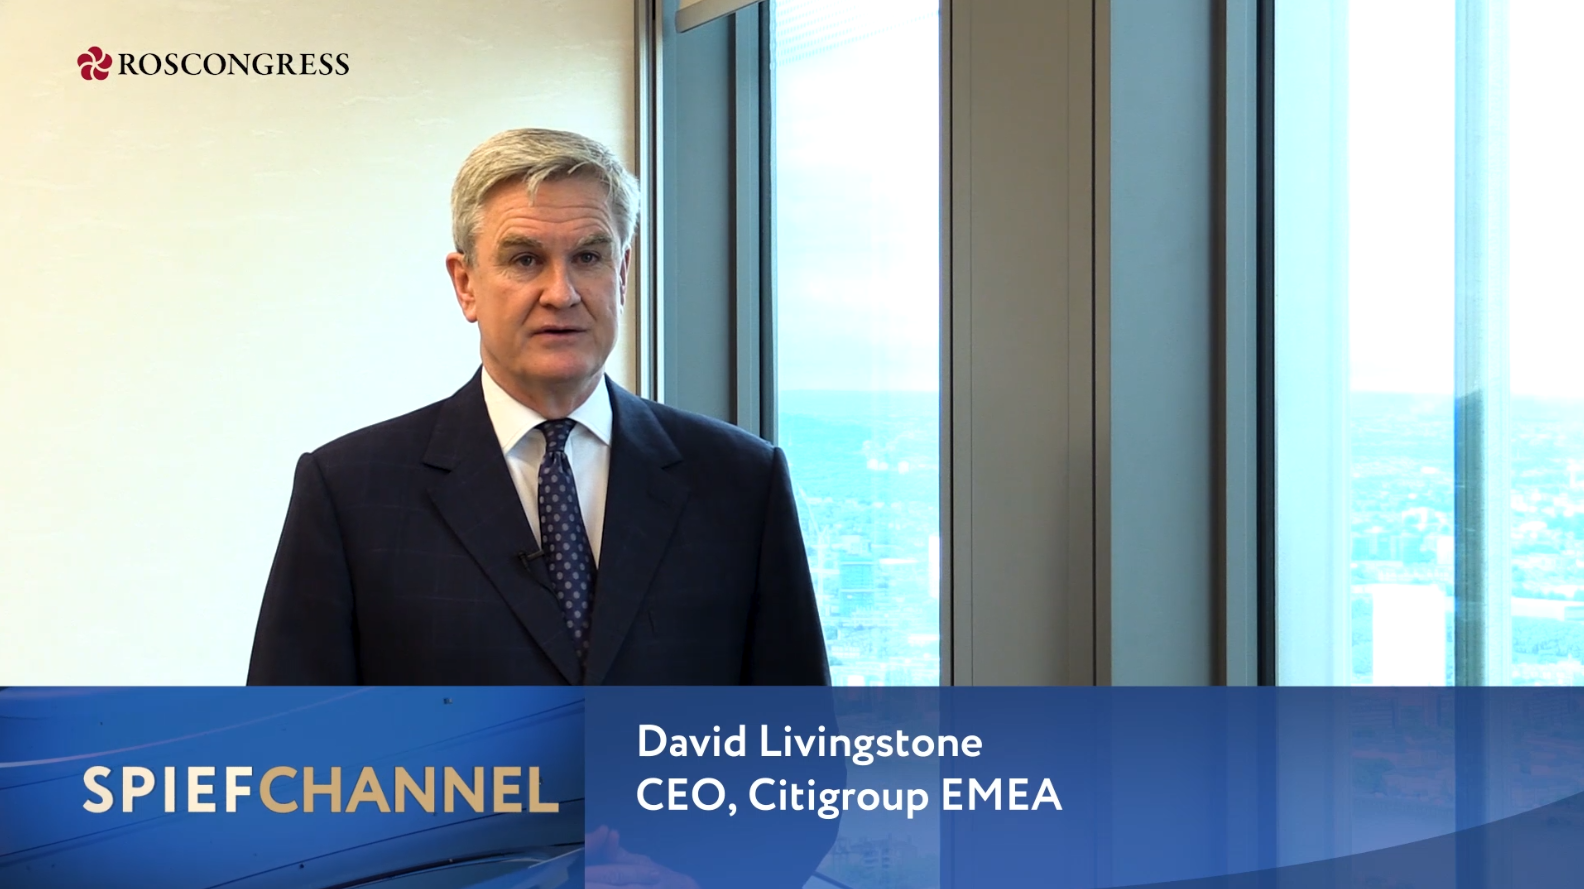 David Livingstone, CEO, Citigroup EMEA